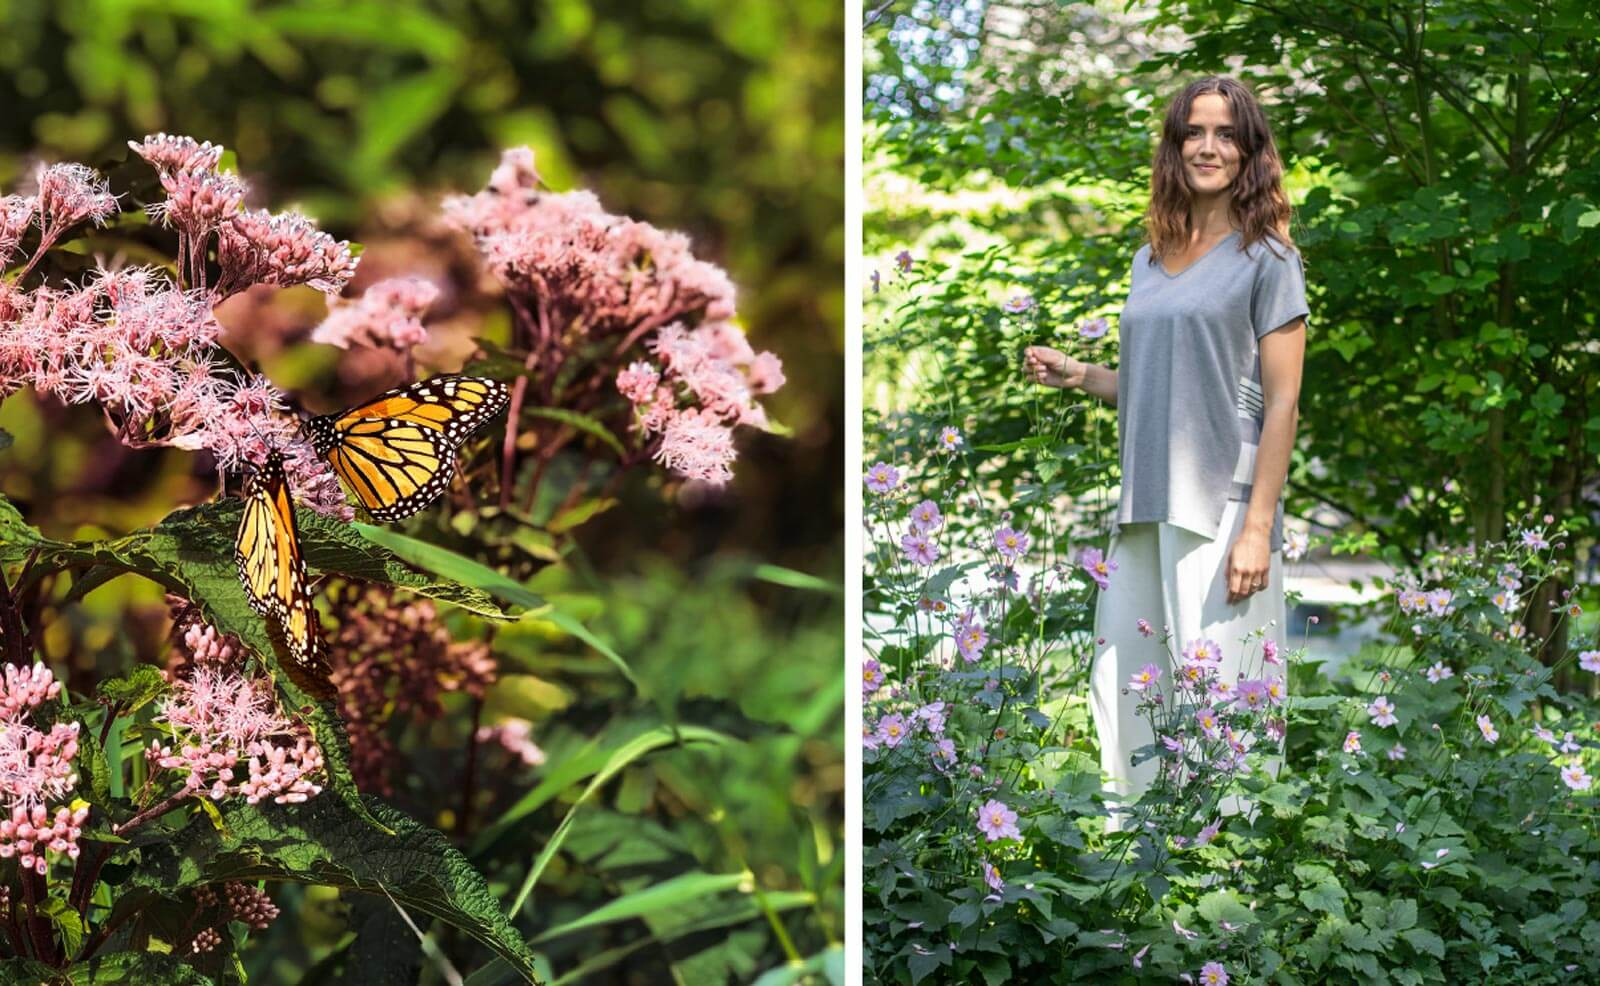 Woman standing in a flower garden with butterflies